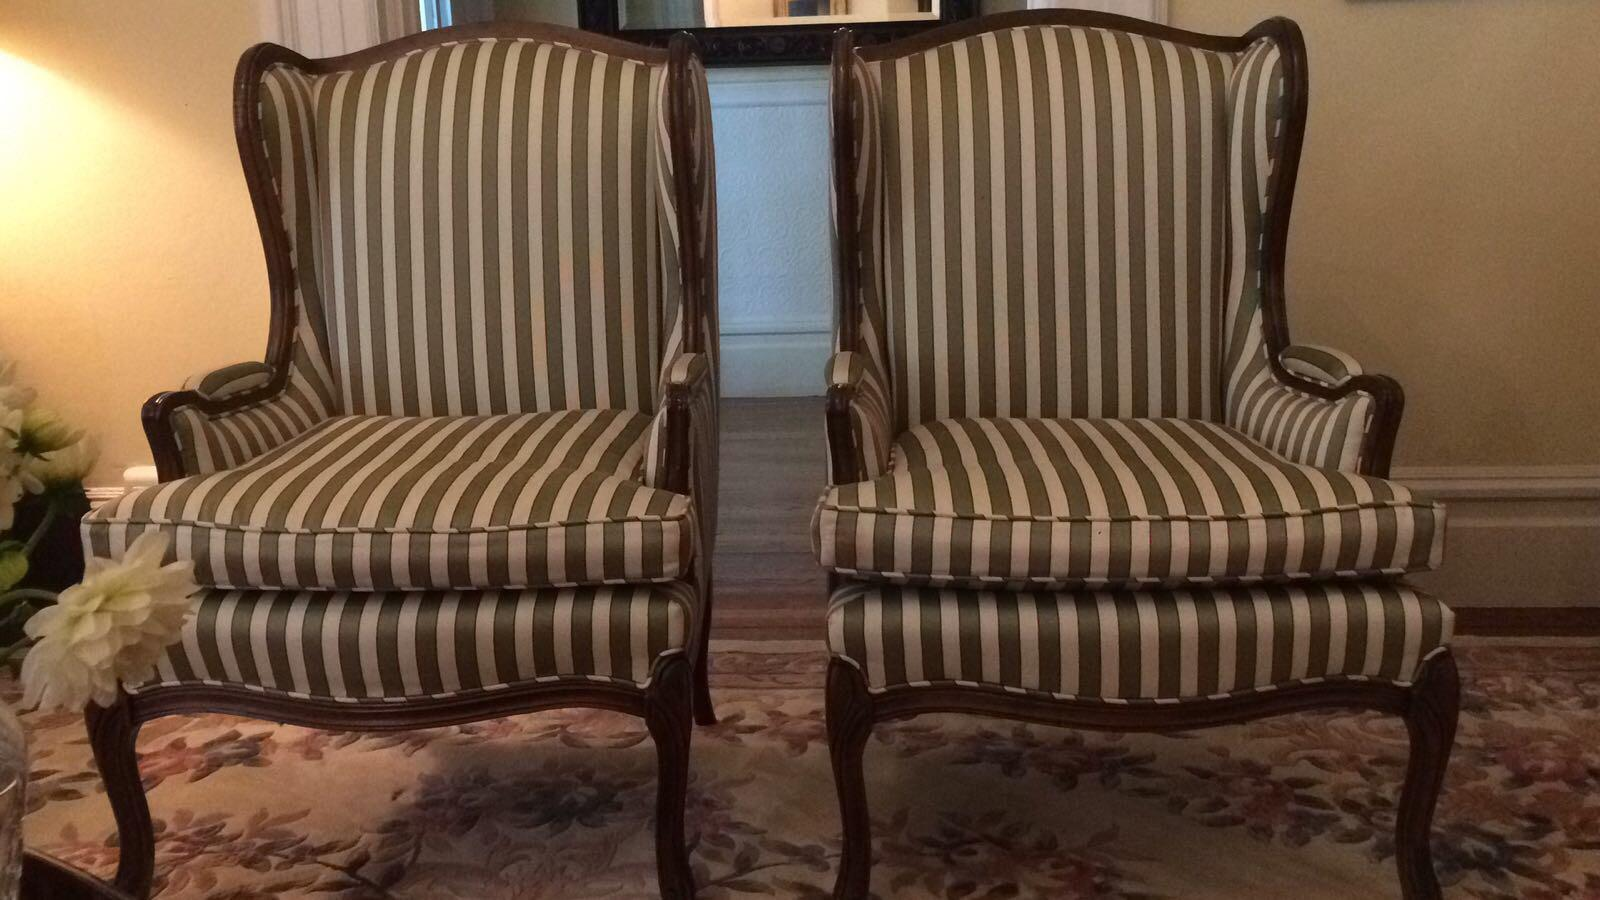 Superb Pair Of Queen Anne Wingback Striped Upholstered Chairs   Image 2 Of 10